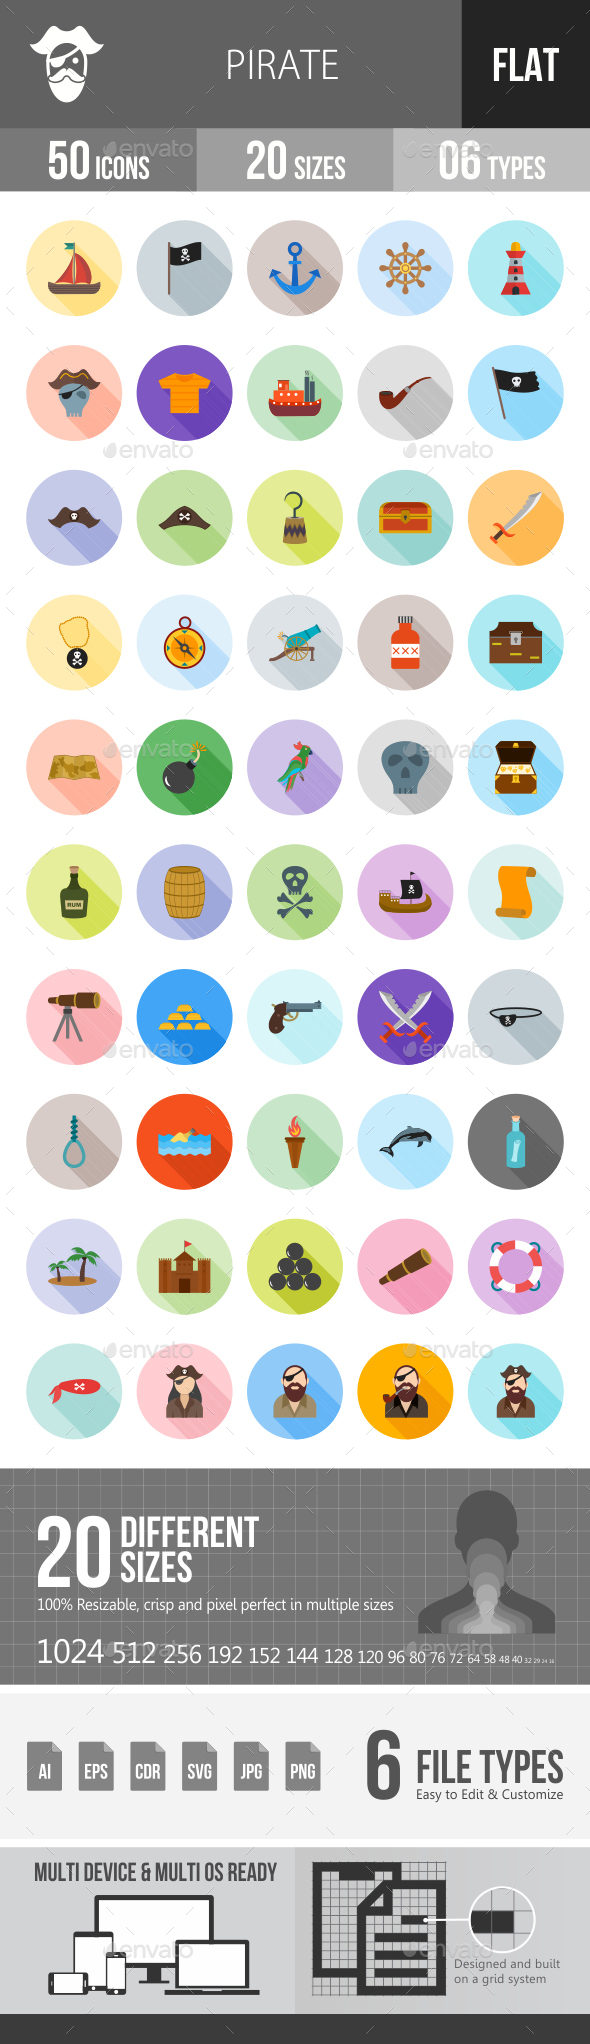 Pirate Flat Shadowed Icons - Icons